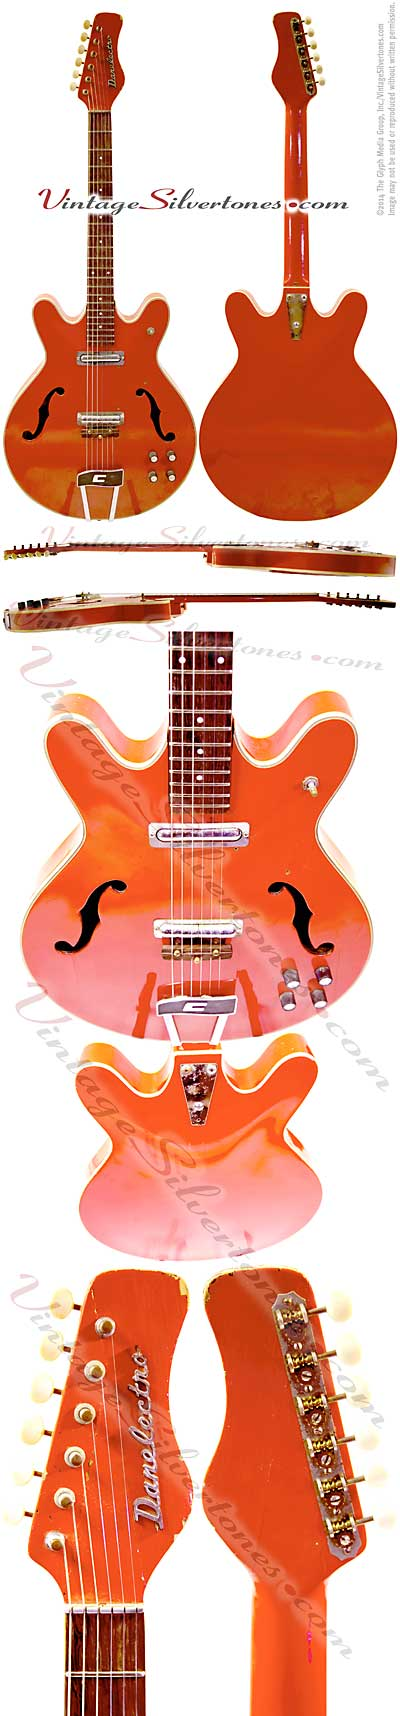 Danelectro Coral Firefly red 2pickups